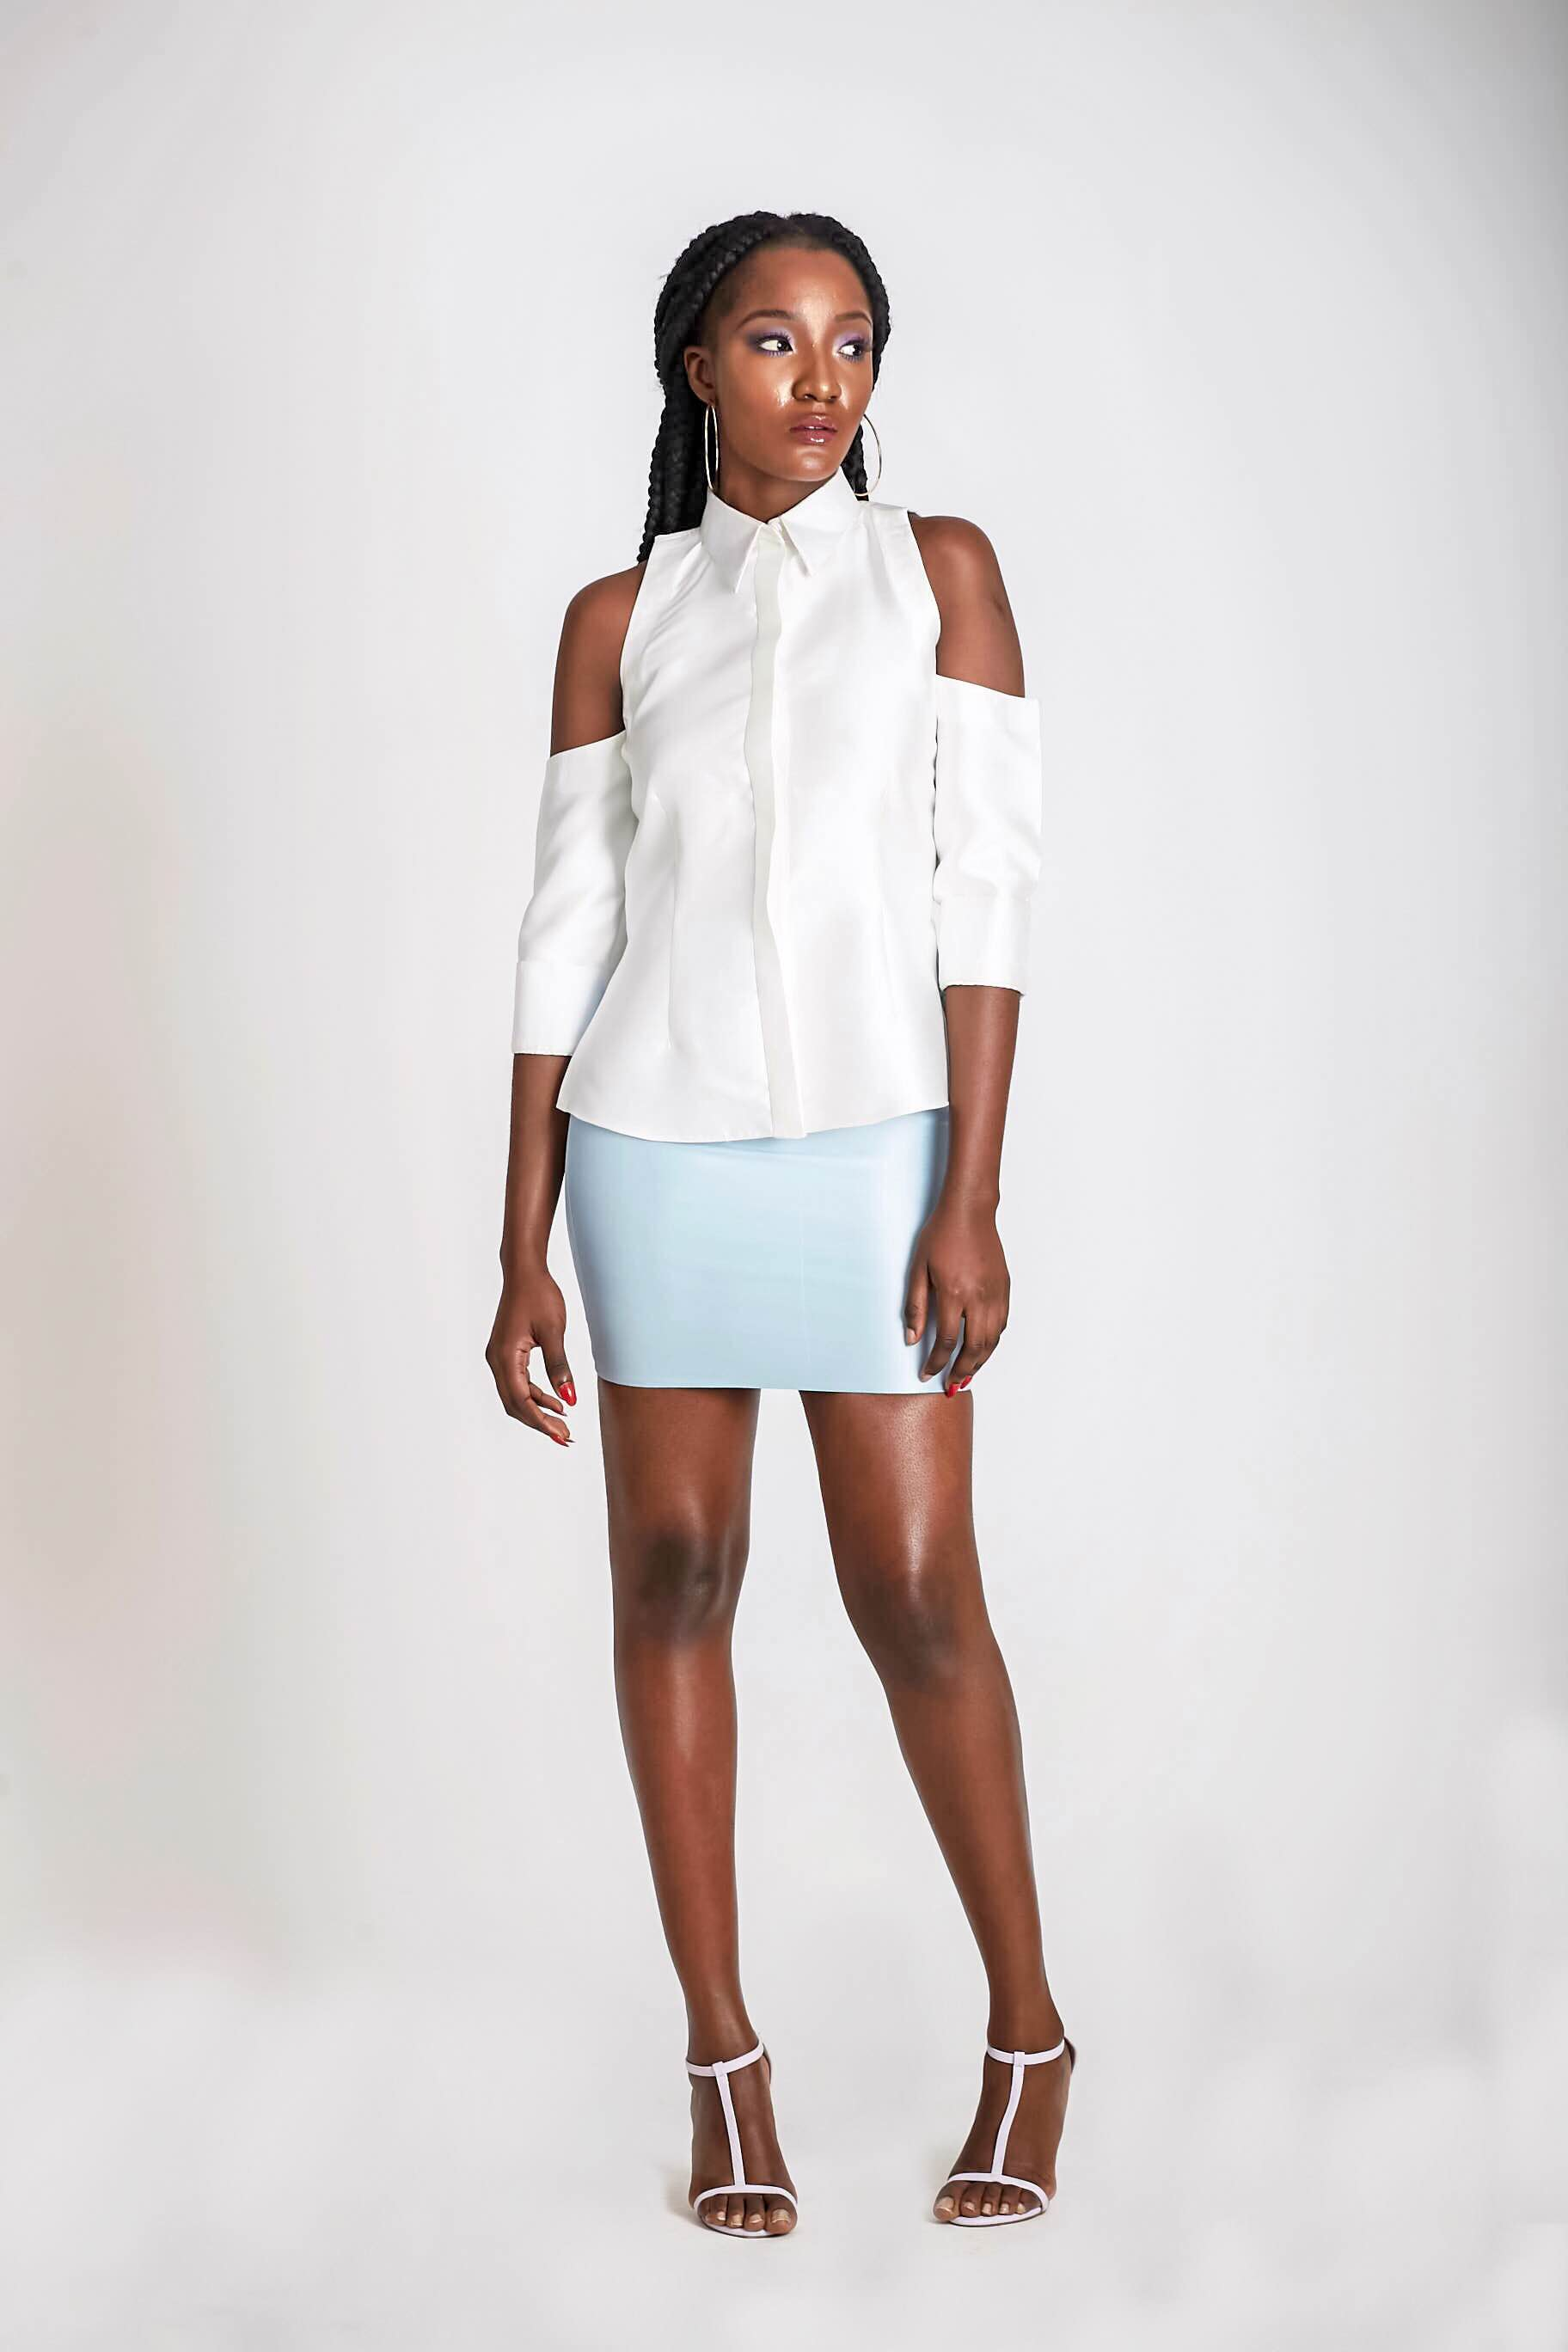 Imad Eduso - BN Style - Collection Lookbook - BellaNaija.com 025